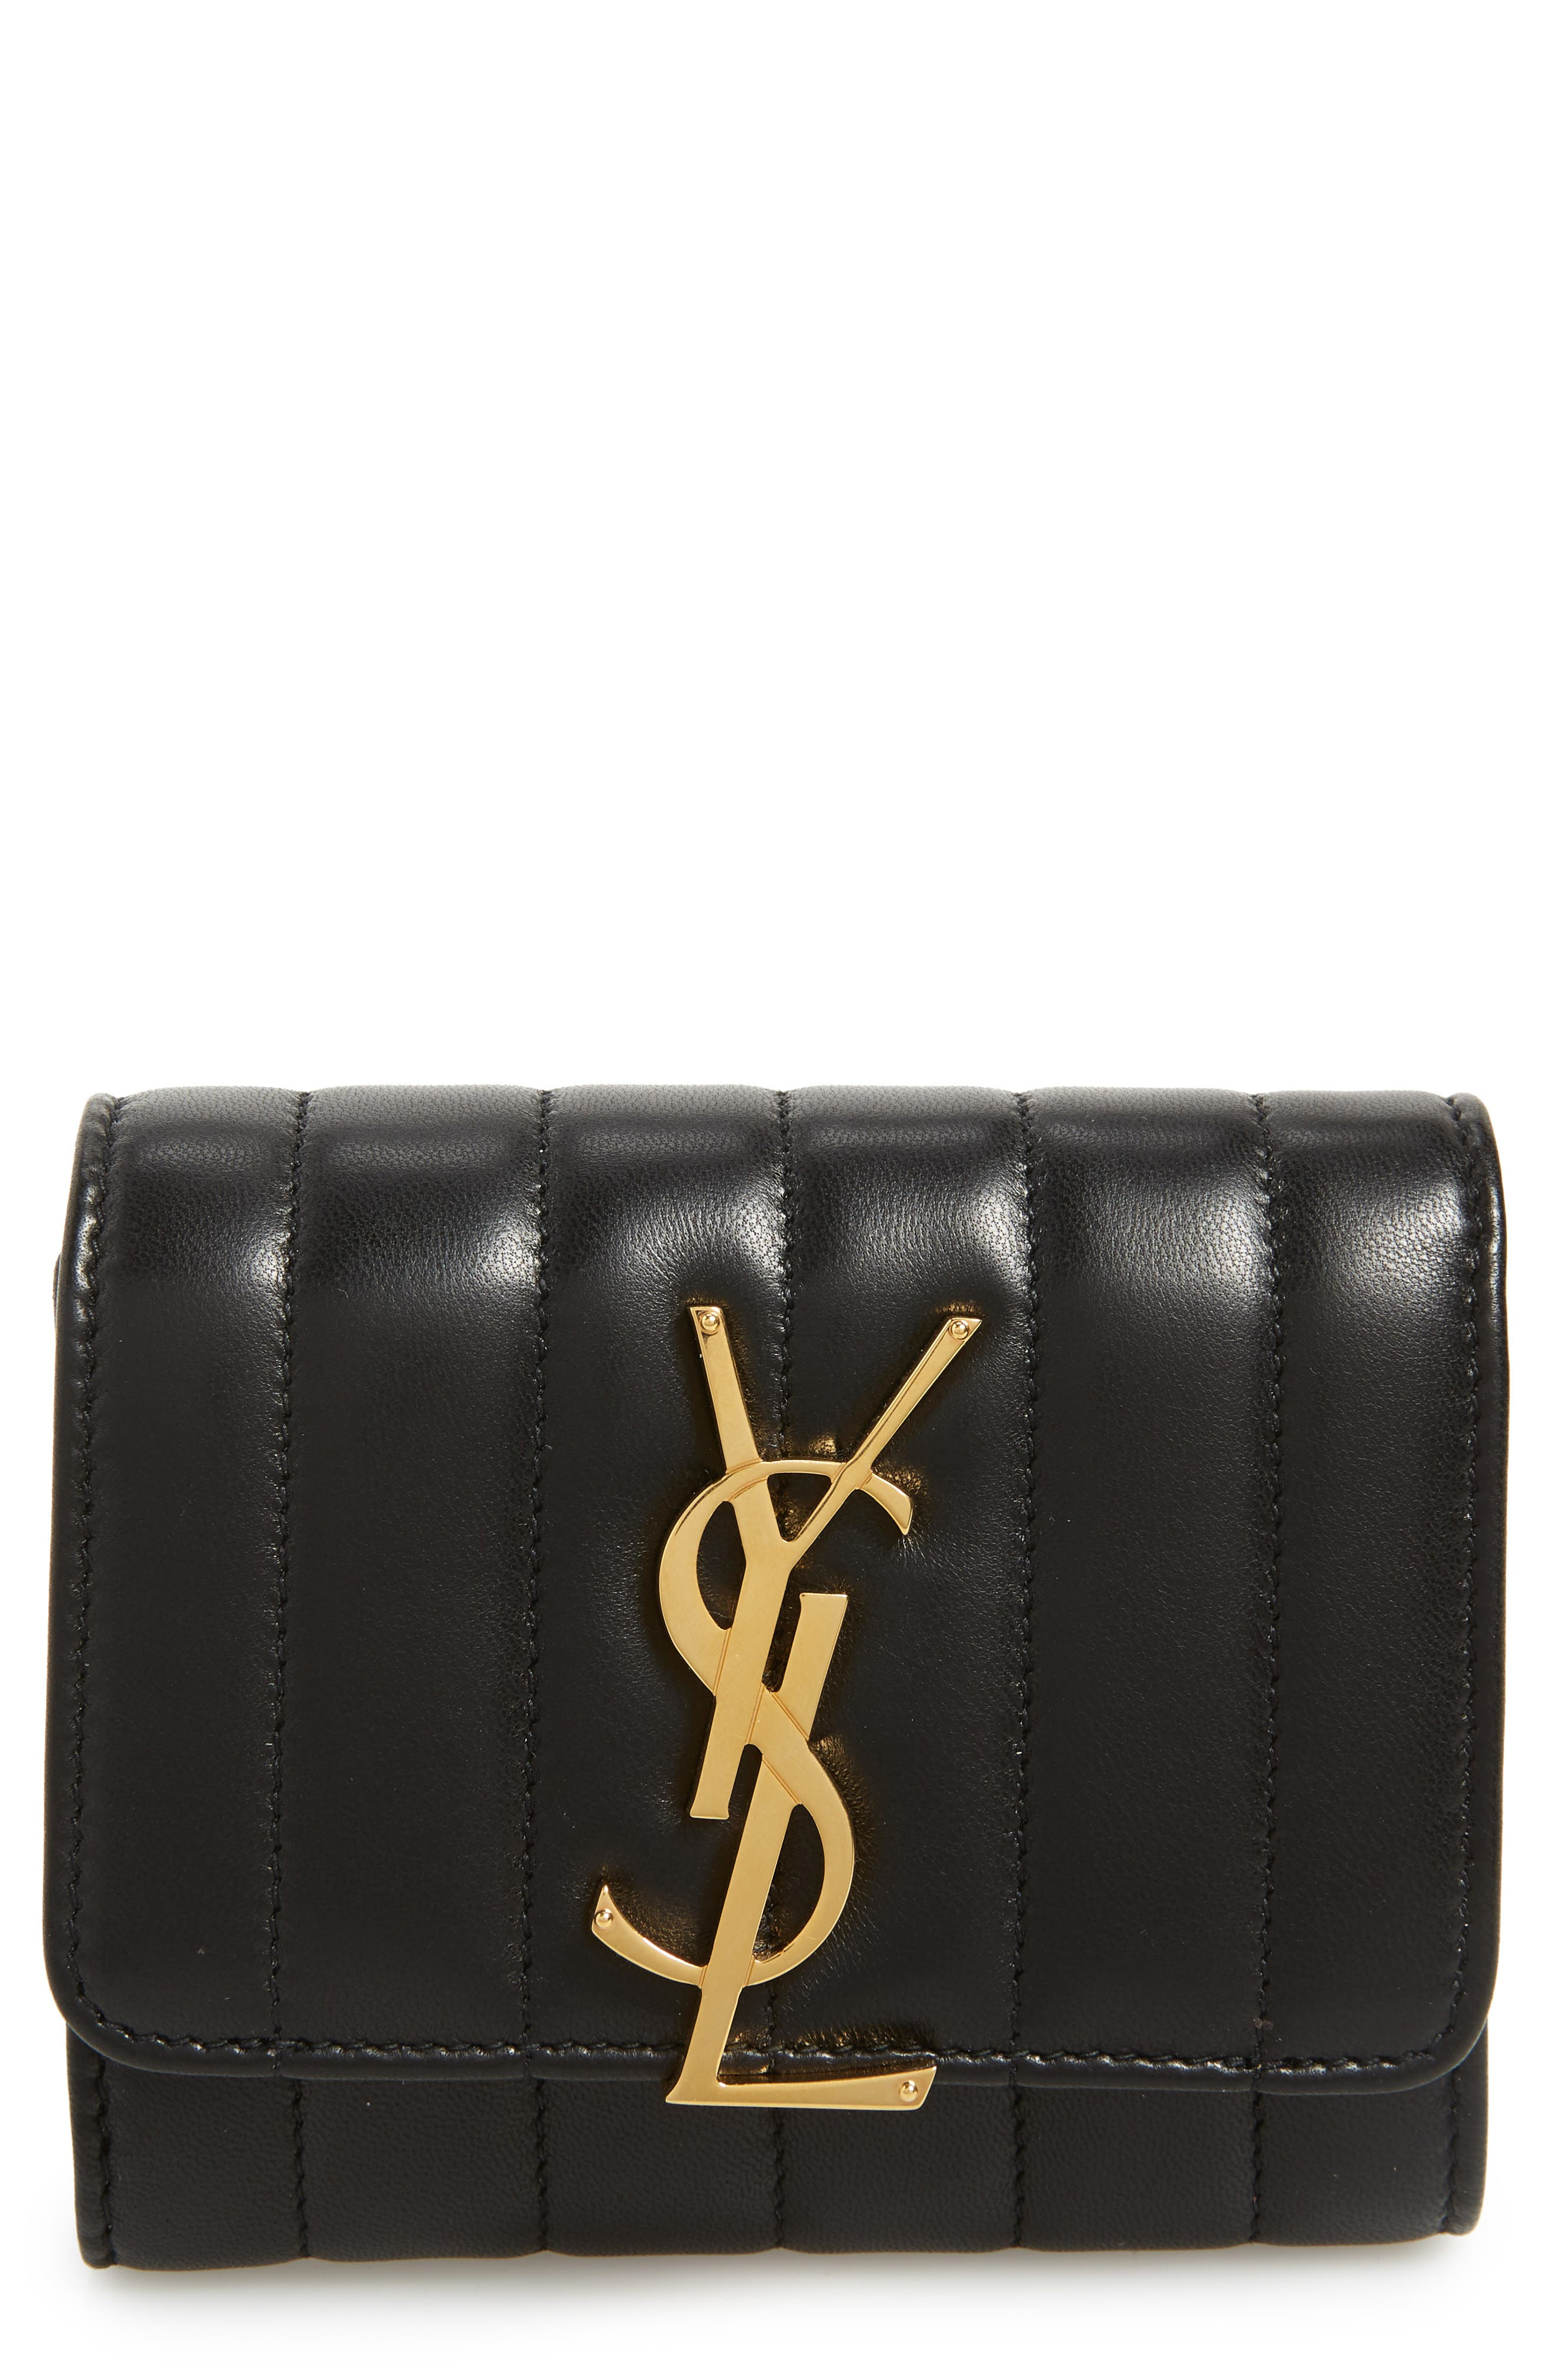 Vicky Lambskin Leather Trifold Wallet,                         Main,                         color, NOIR